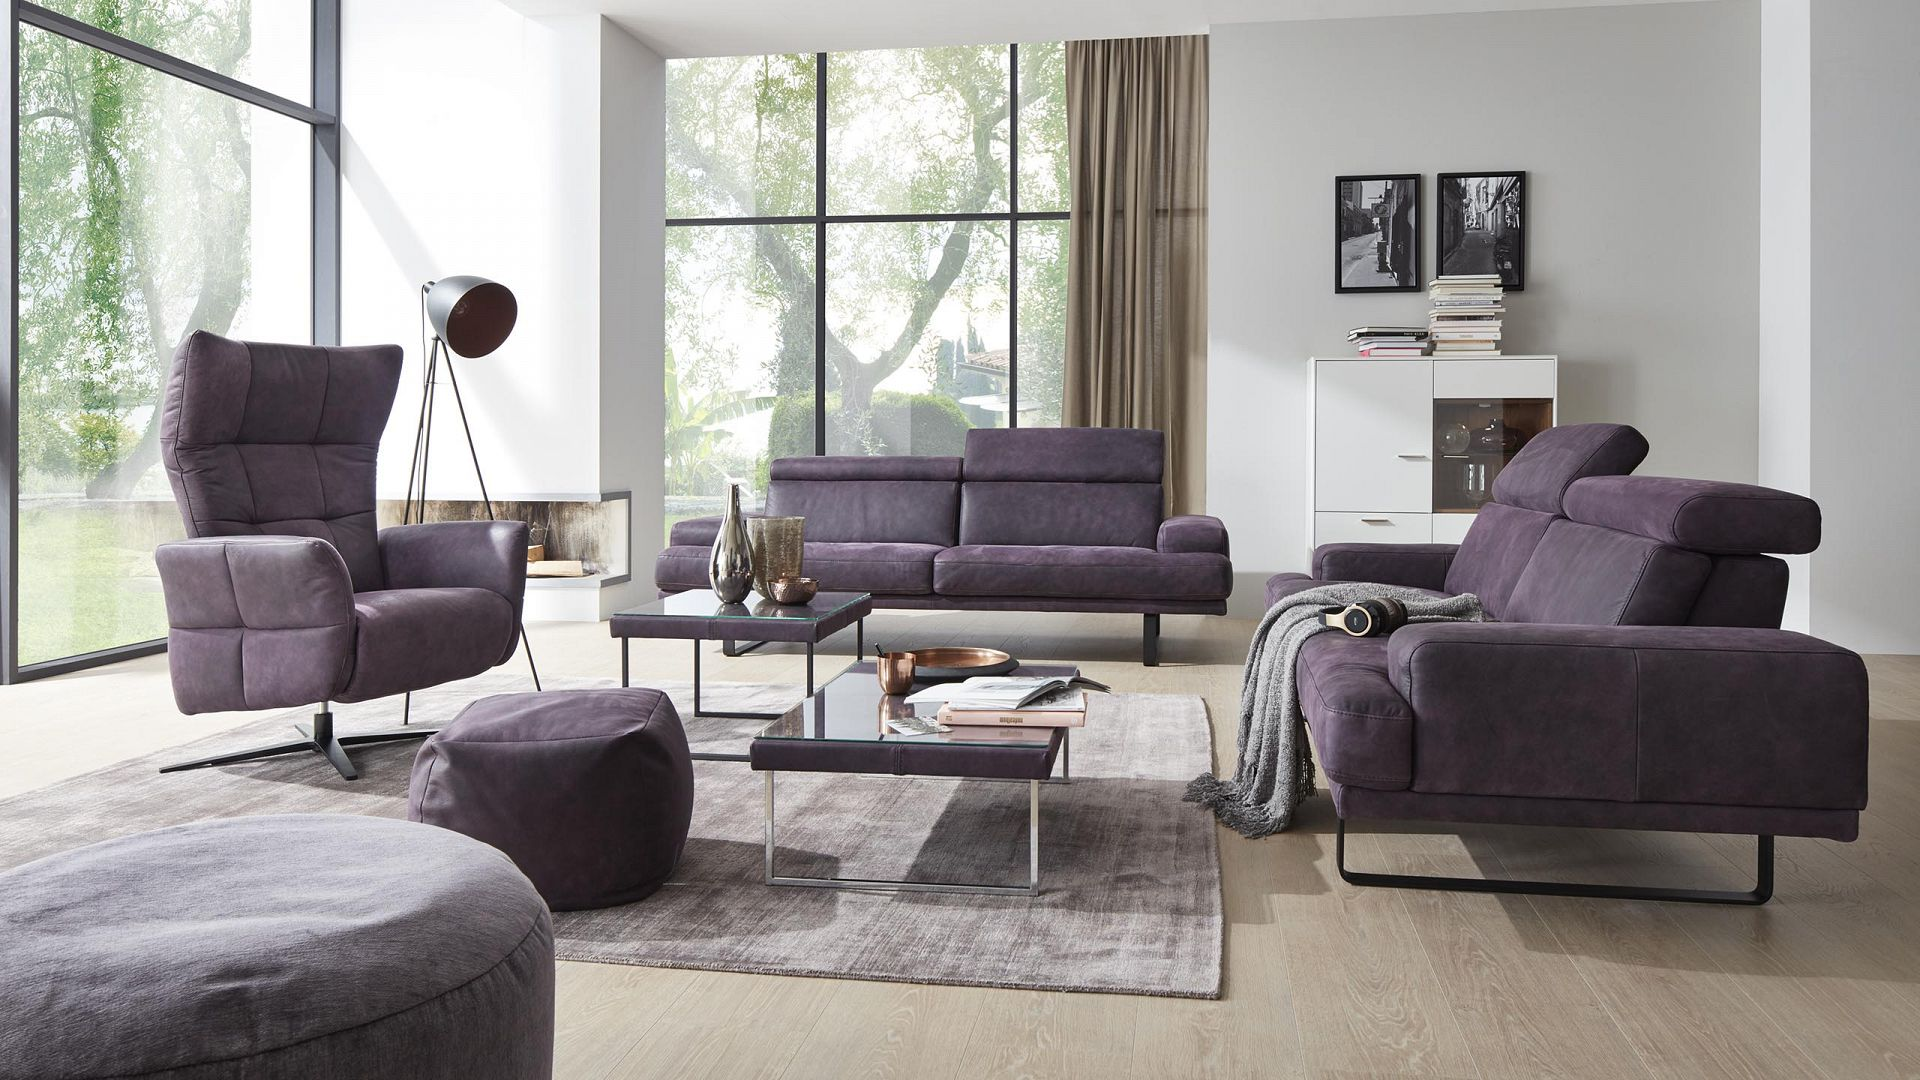 Interliving Sofa Serie 4152 Image